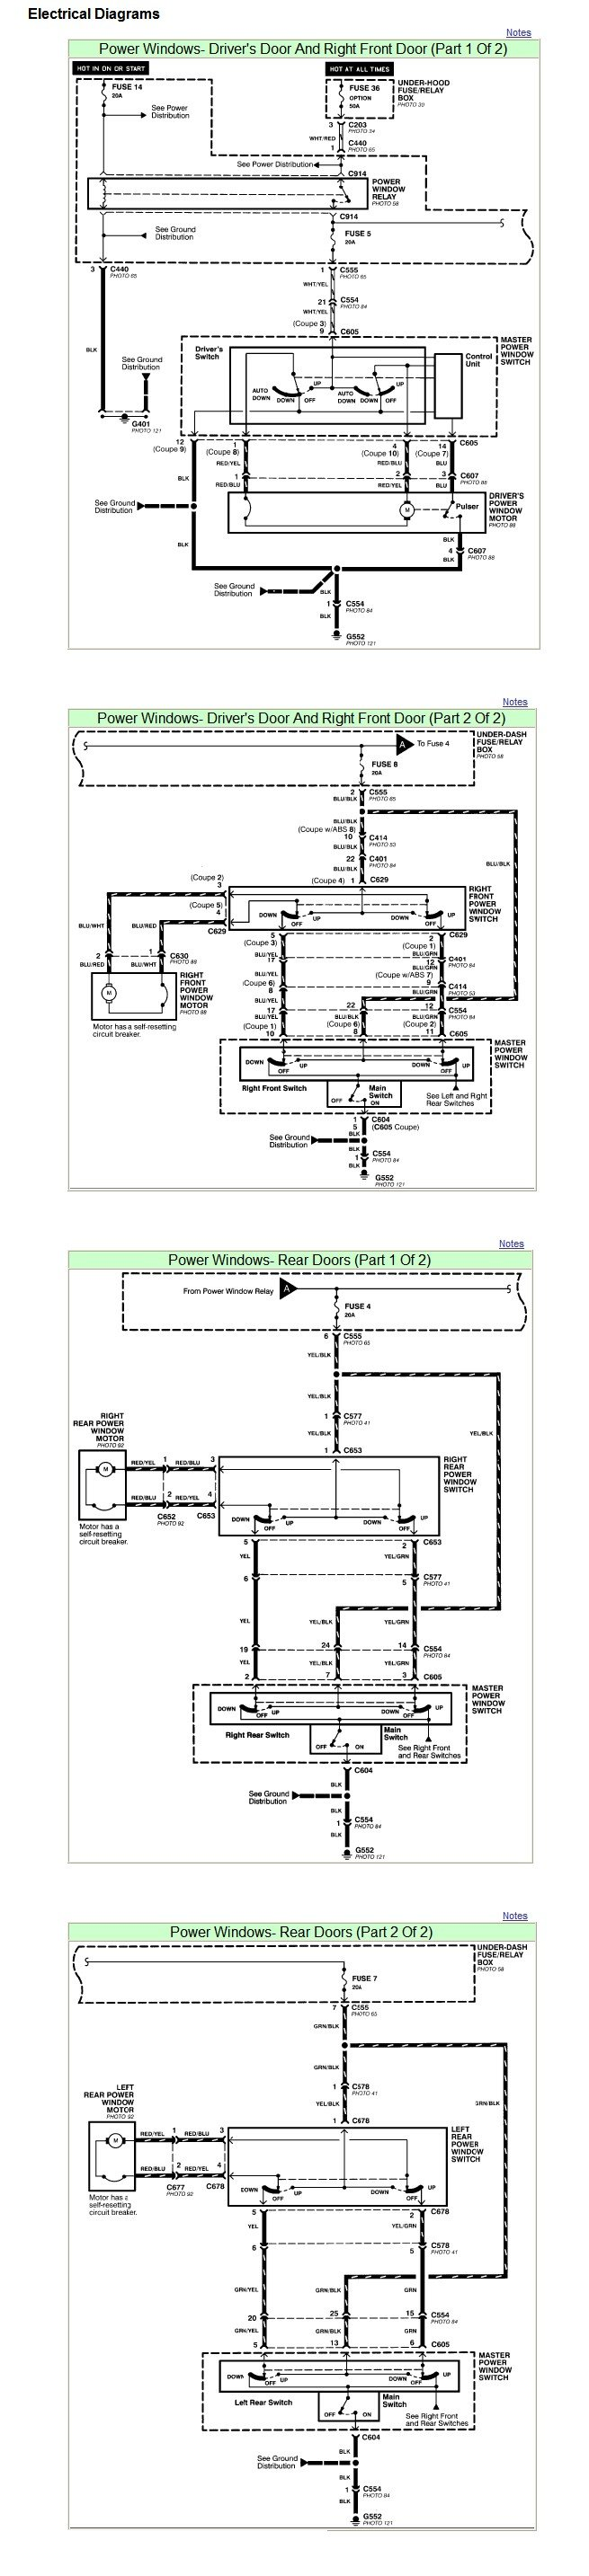 DIAGRAM] 2001 Honda Civic Power Window Wiring Diagram FULL Version HD  Quality Wiring Diagram - HOMEWIRINGSERVICES.MAMI-WATA.FRDiagram Database - Mami Wata